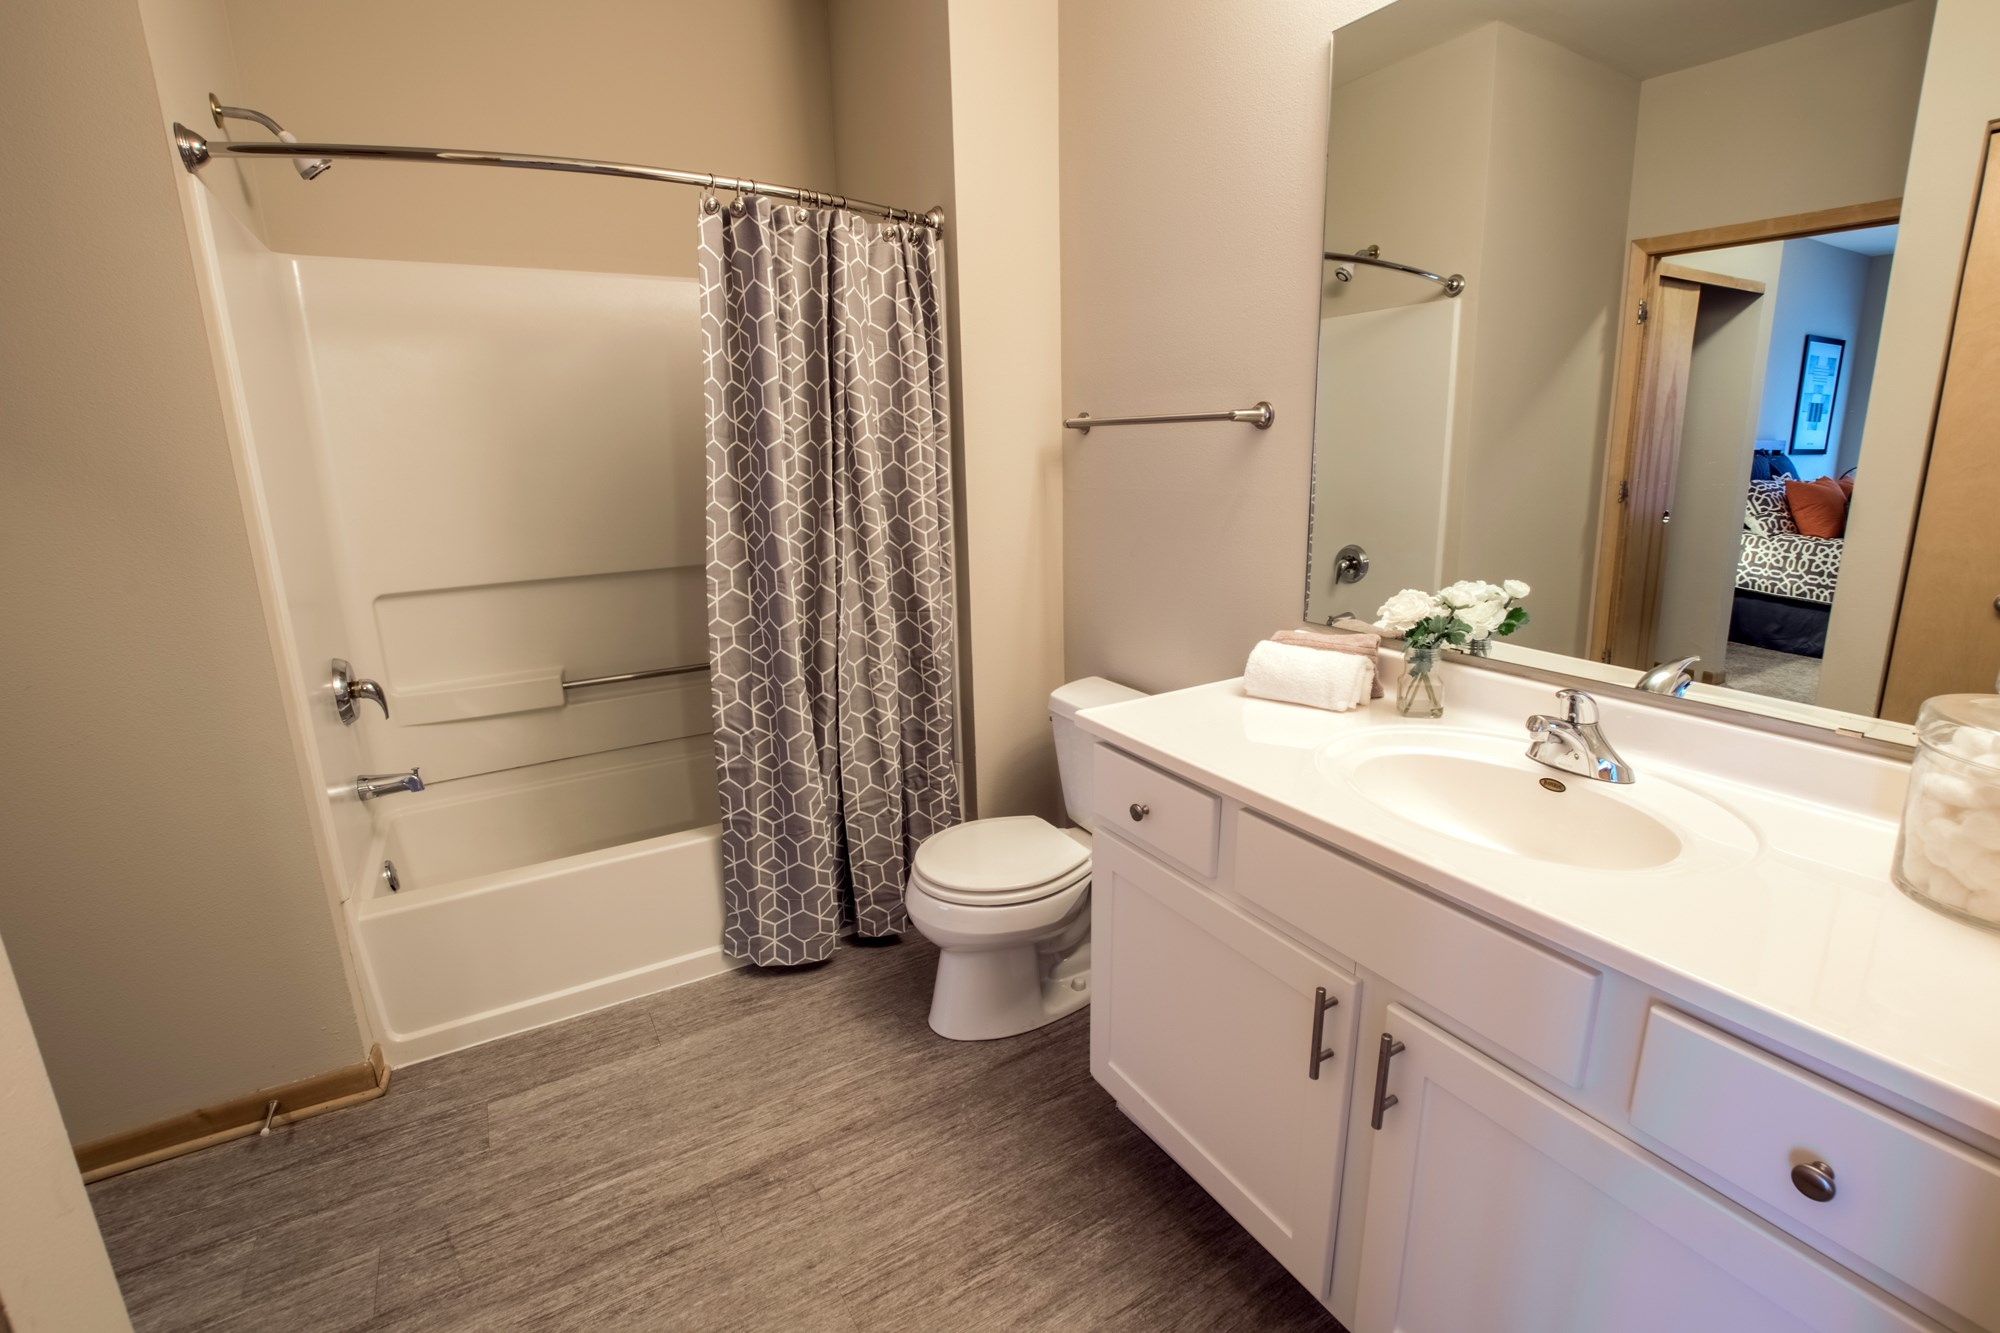 Bathroom at Trostel Square Apartments in Milwaukee, WI